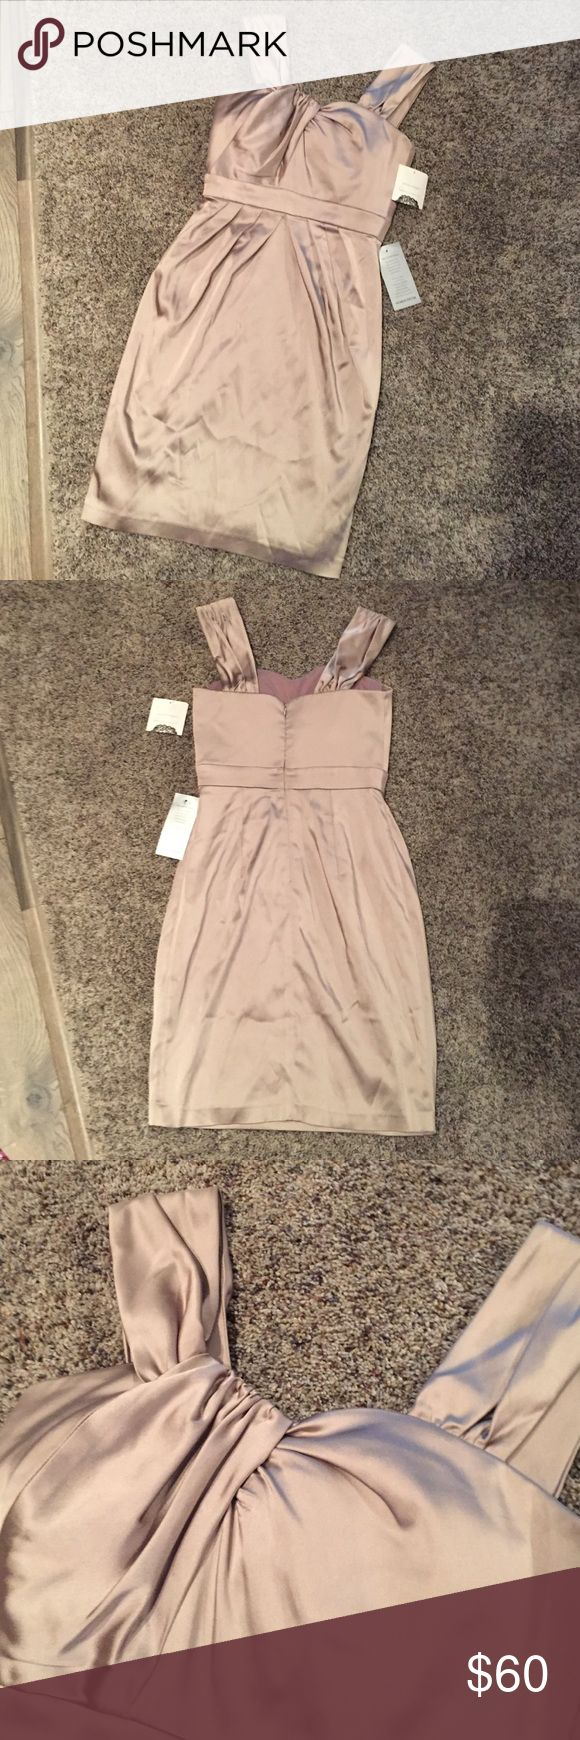 NWT dress NWT Donna Morgan nude satin dress. Great for special occasions, mother of the bride, etc. 😊 Donna Morgan Dresses Midi